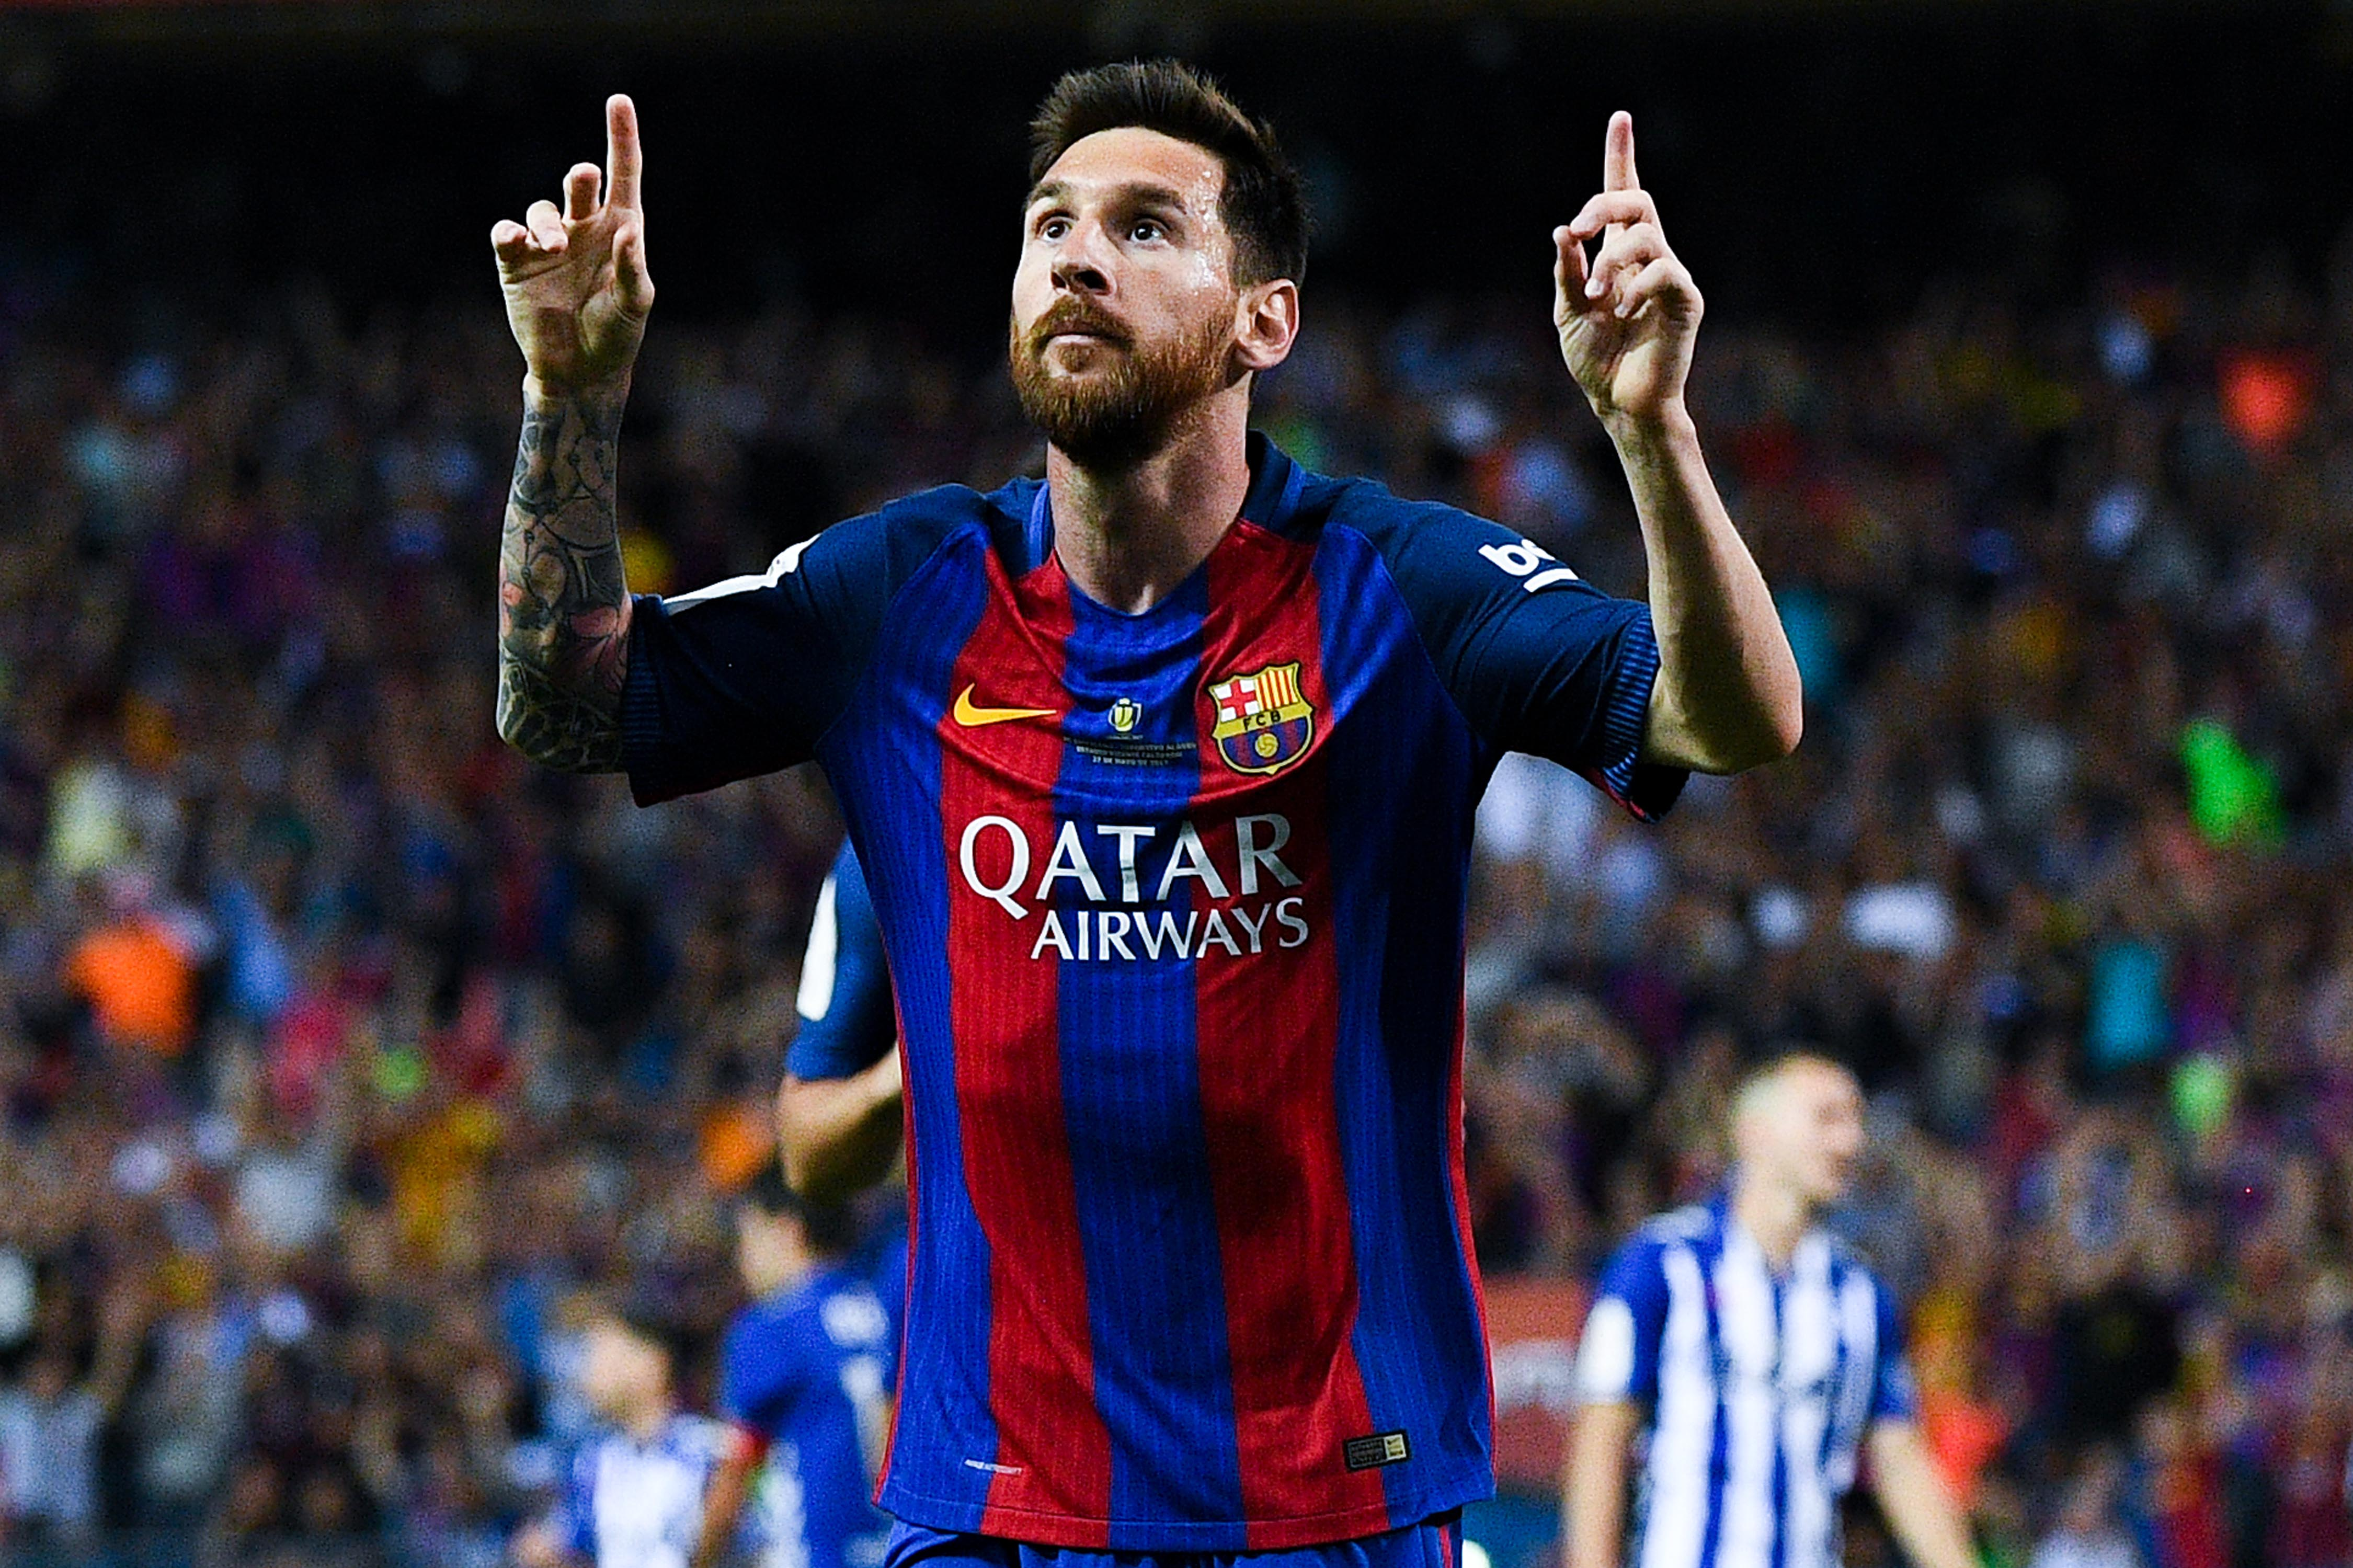 Reports: Lionel Messi could pay fine to avoid prison time in tax case